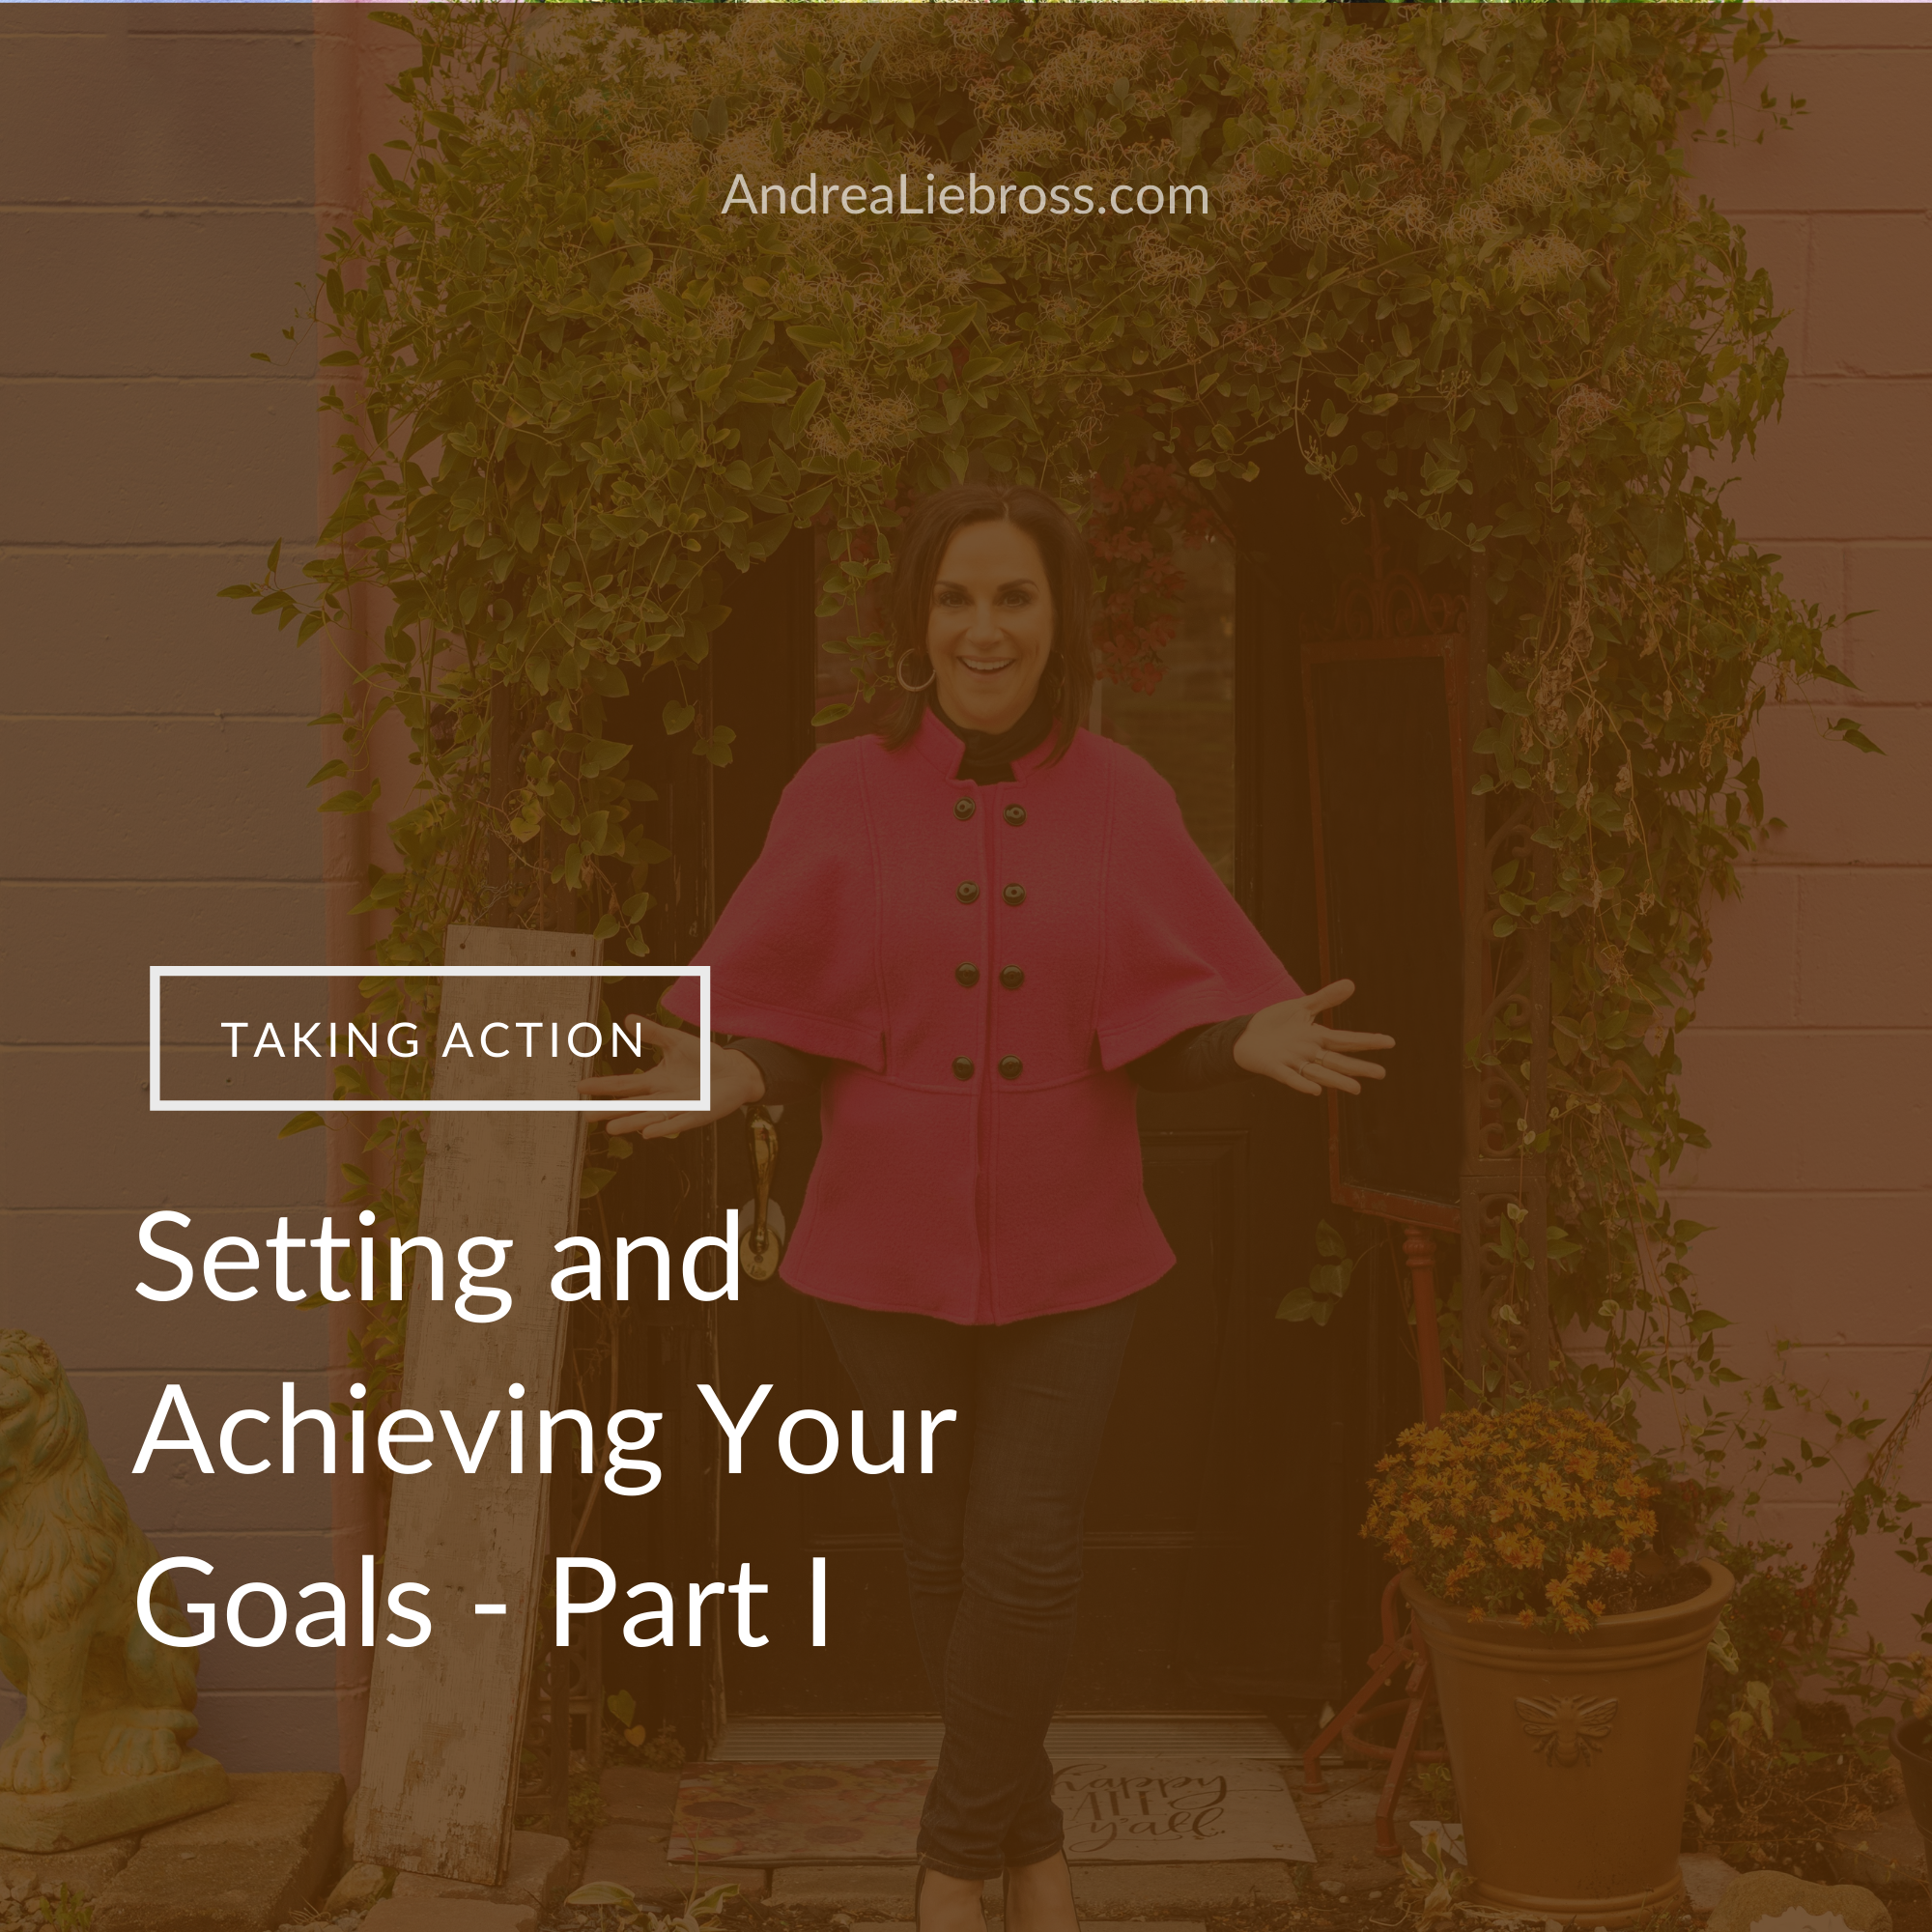 Setting and Achieving Your Goals - Part I